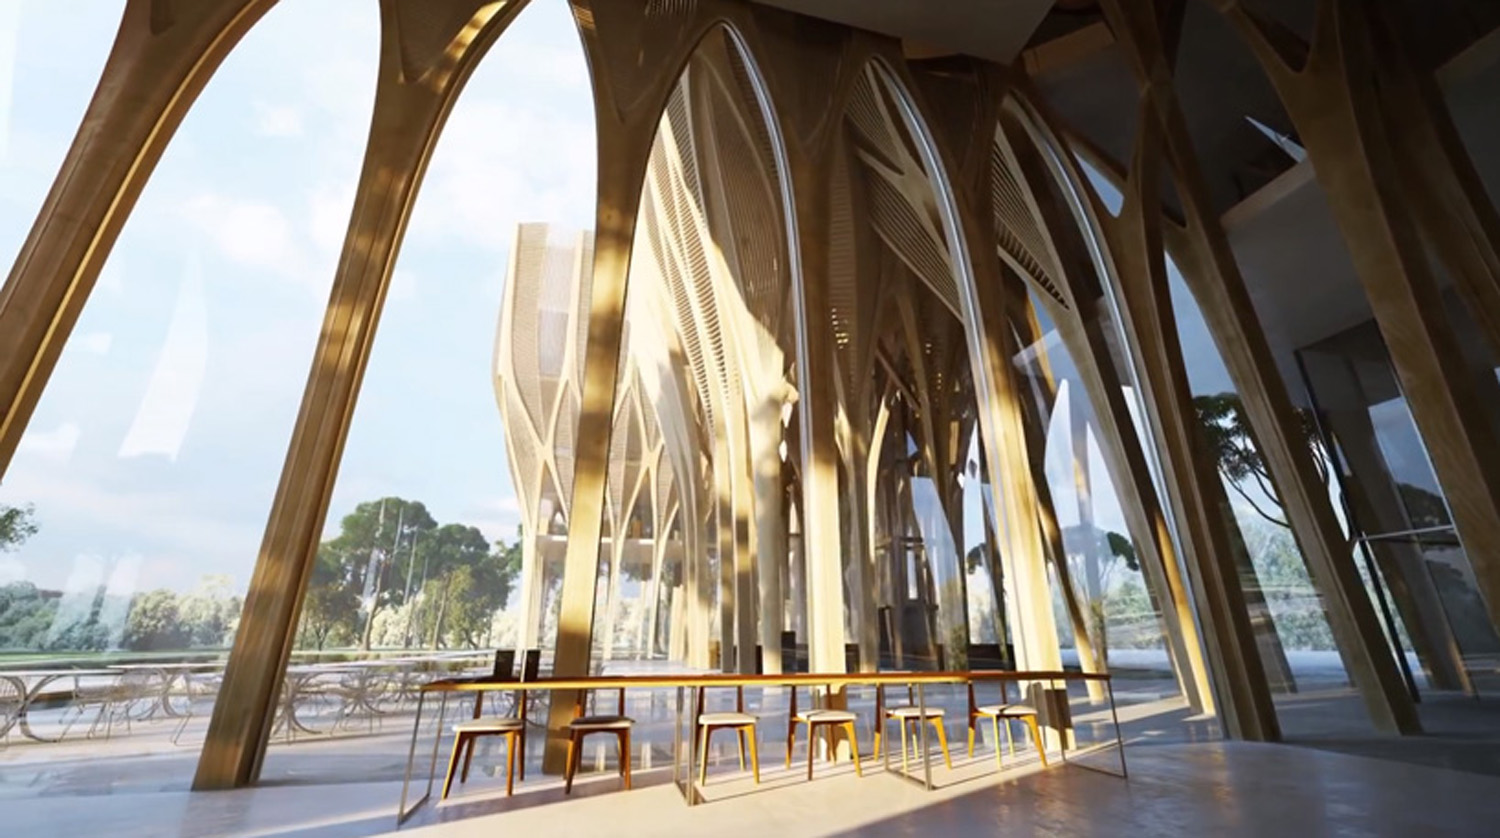 mm_Sleuk Rith Institute in Cambodia design by Zaha Hadid Architects_11